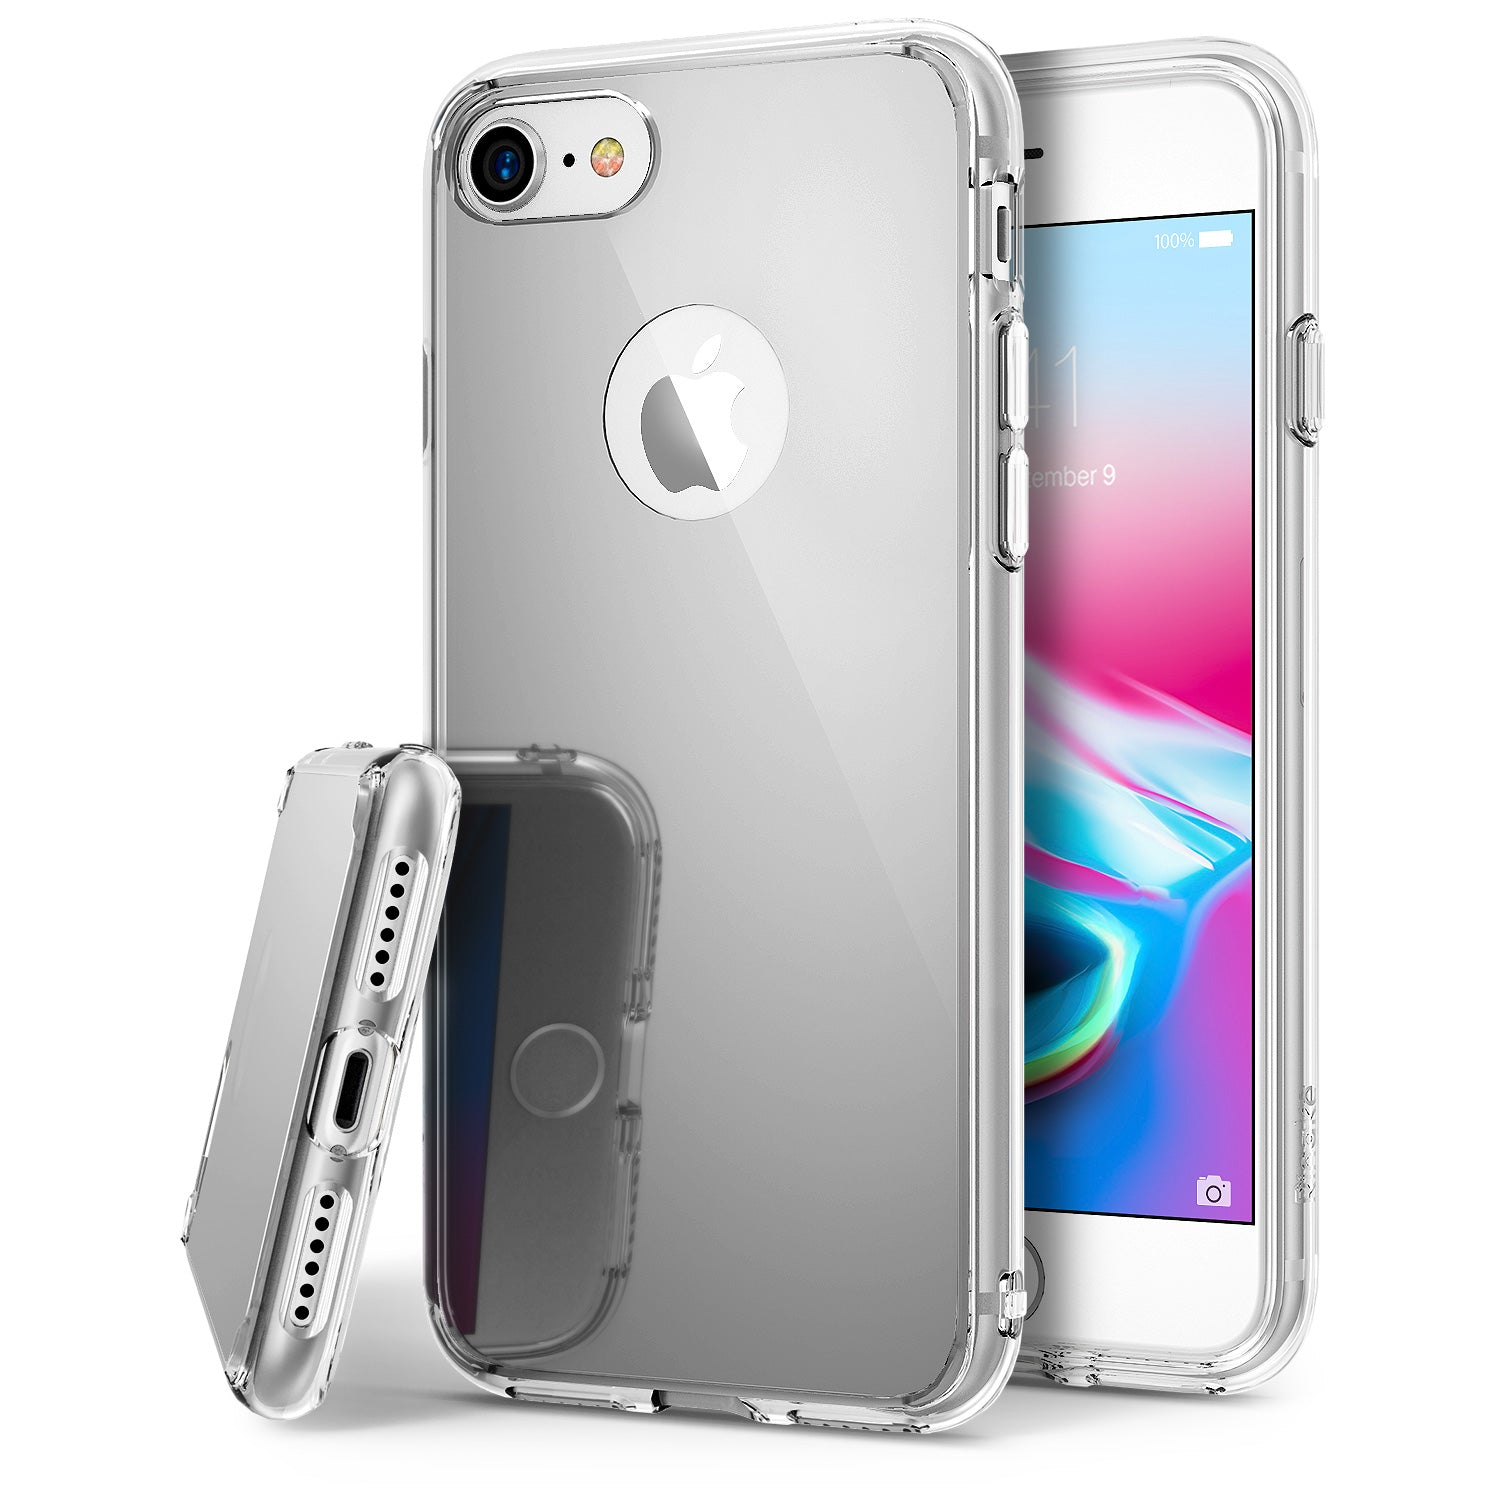 ringke mirror back case cover for iphone 7 8 main silver